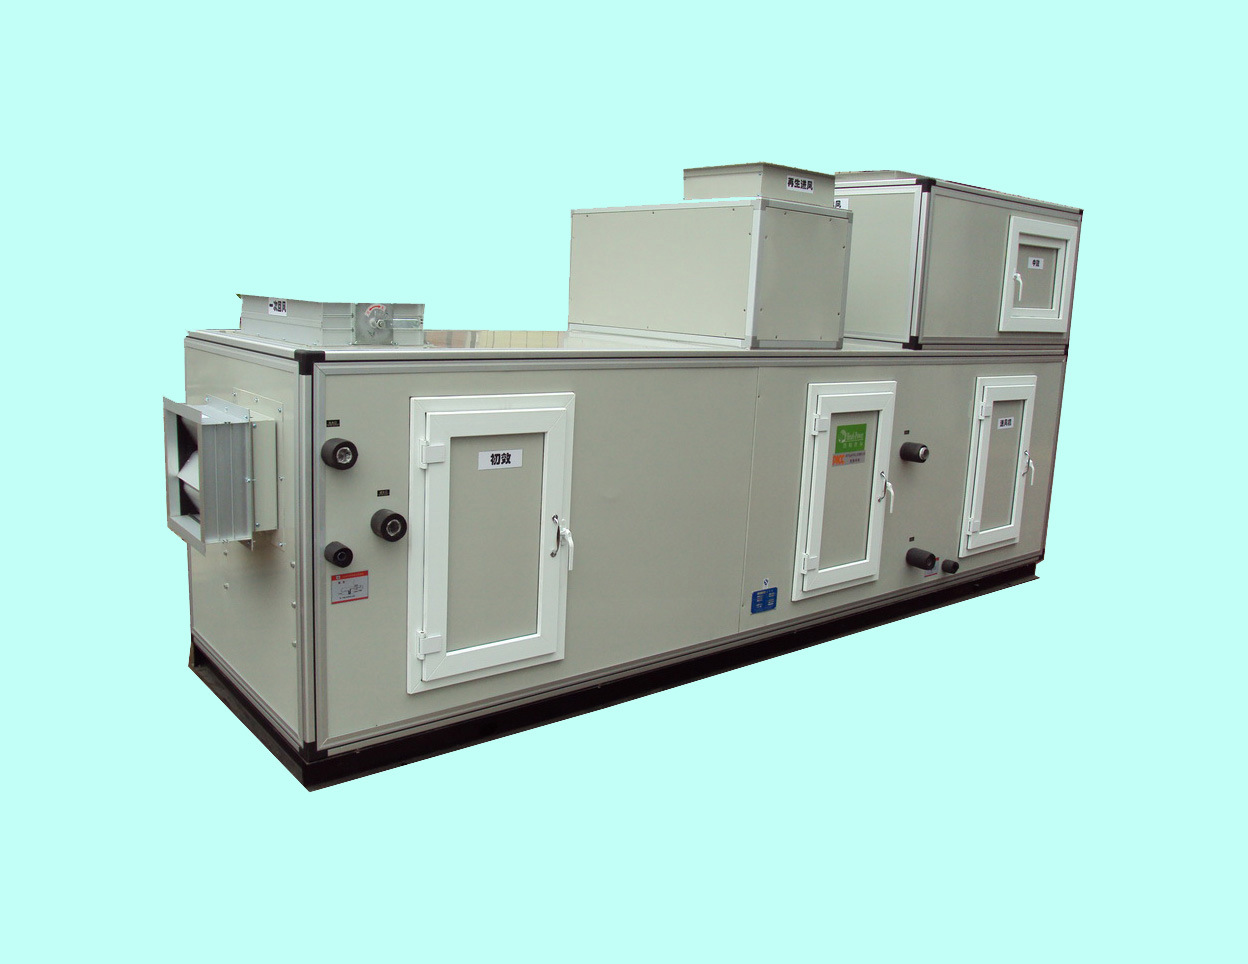 China ZK Series Air Conditioning Equipment China Air Handling  #11BAA2